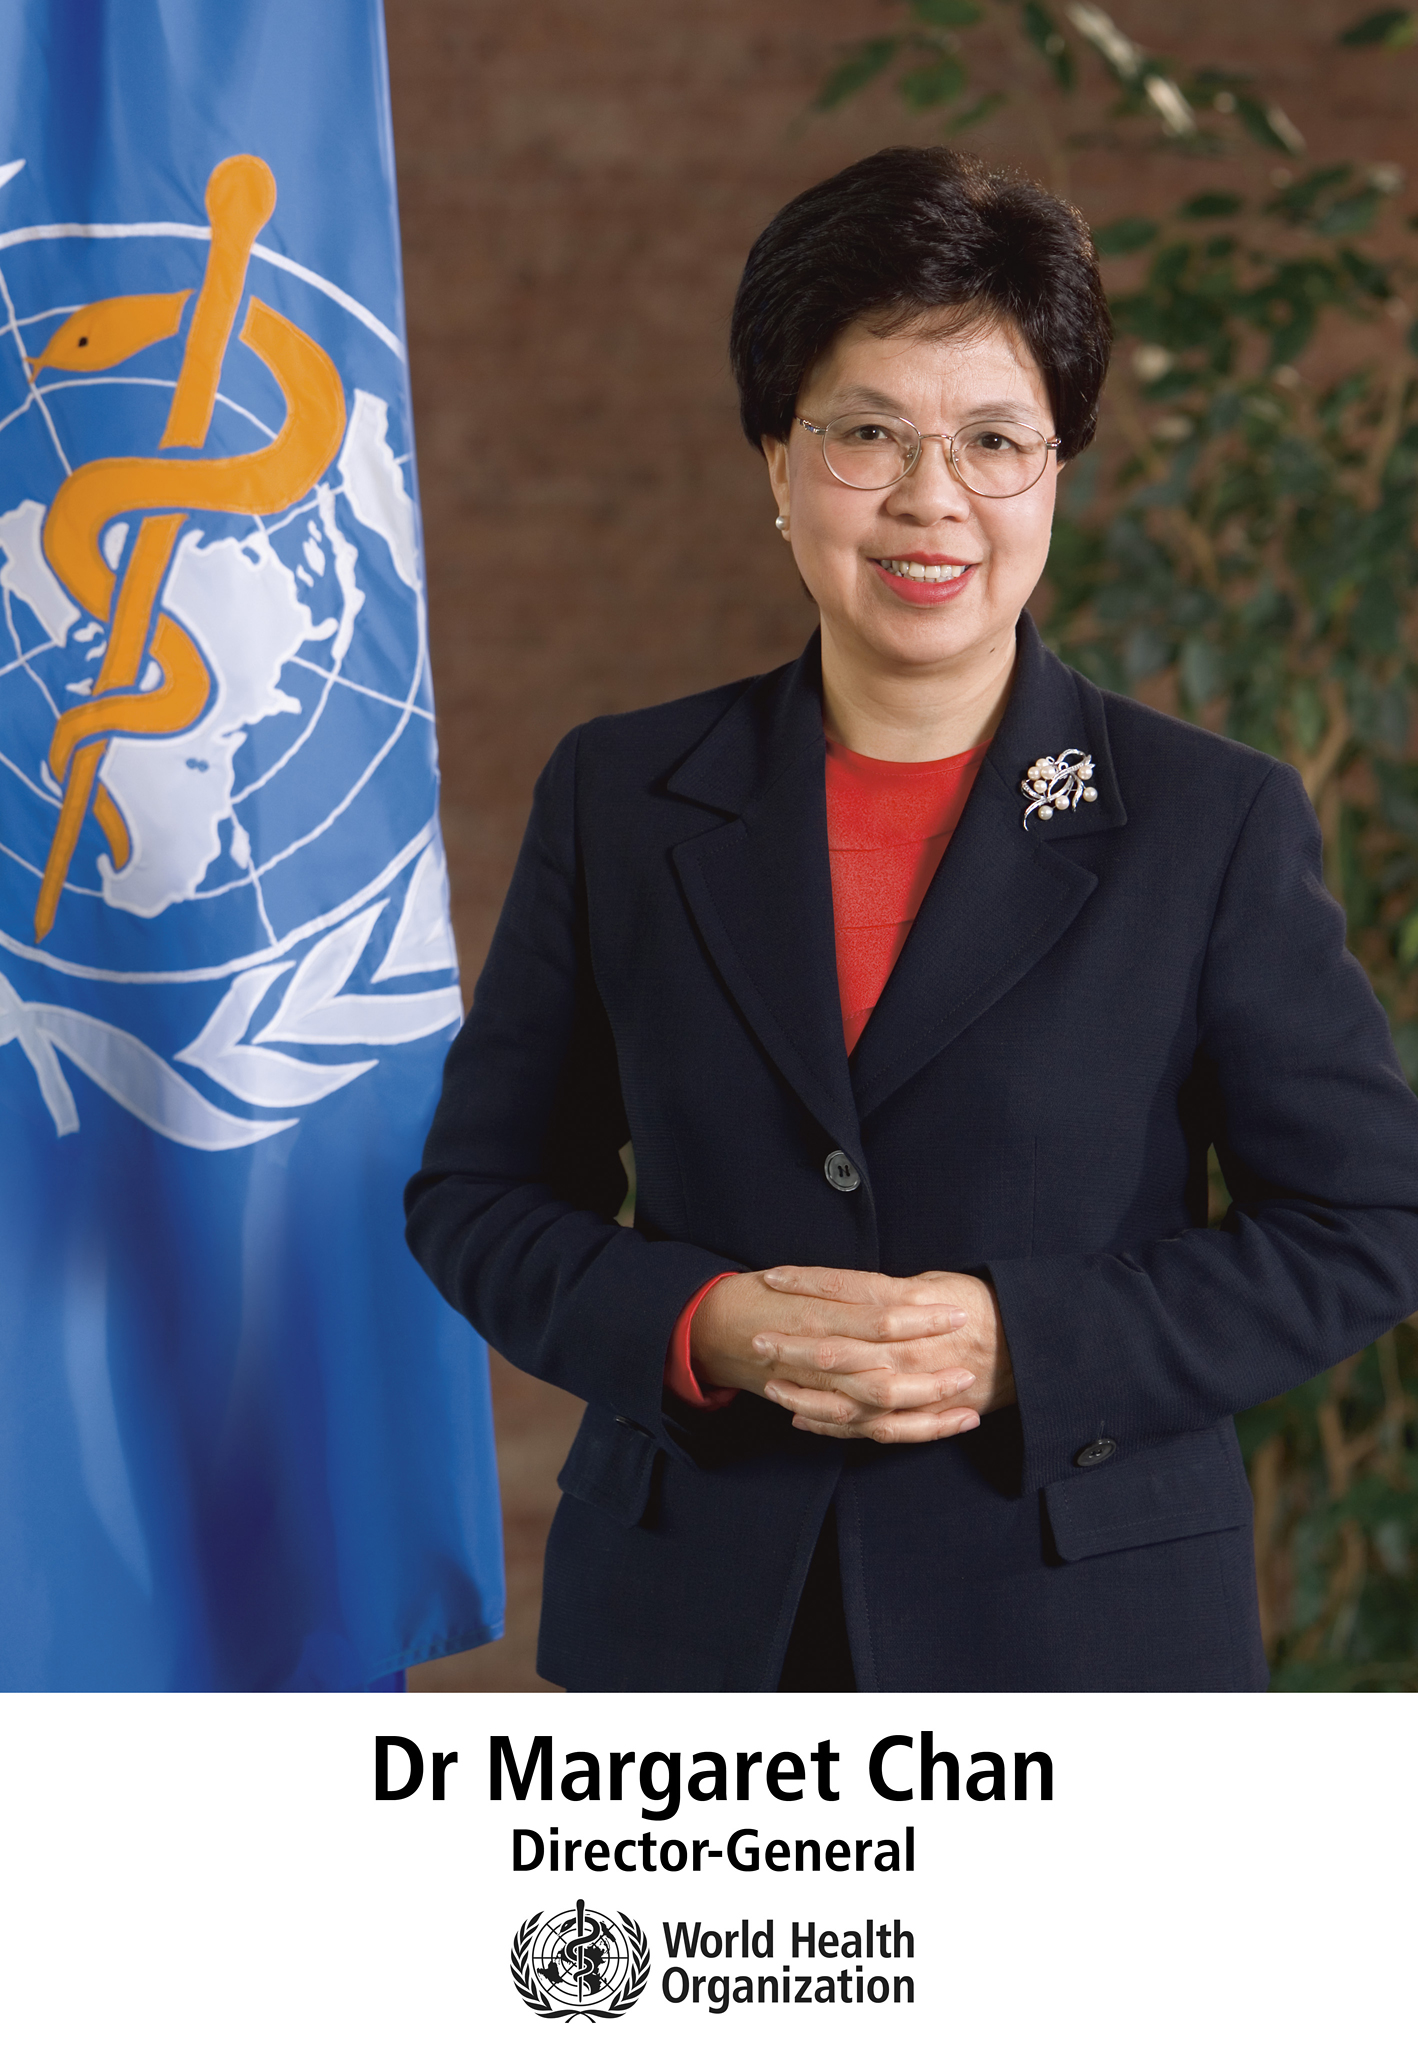 So You Want to Be the Next Director-General of the World Health Organization…